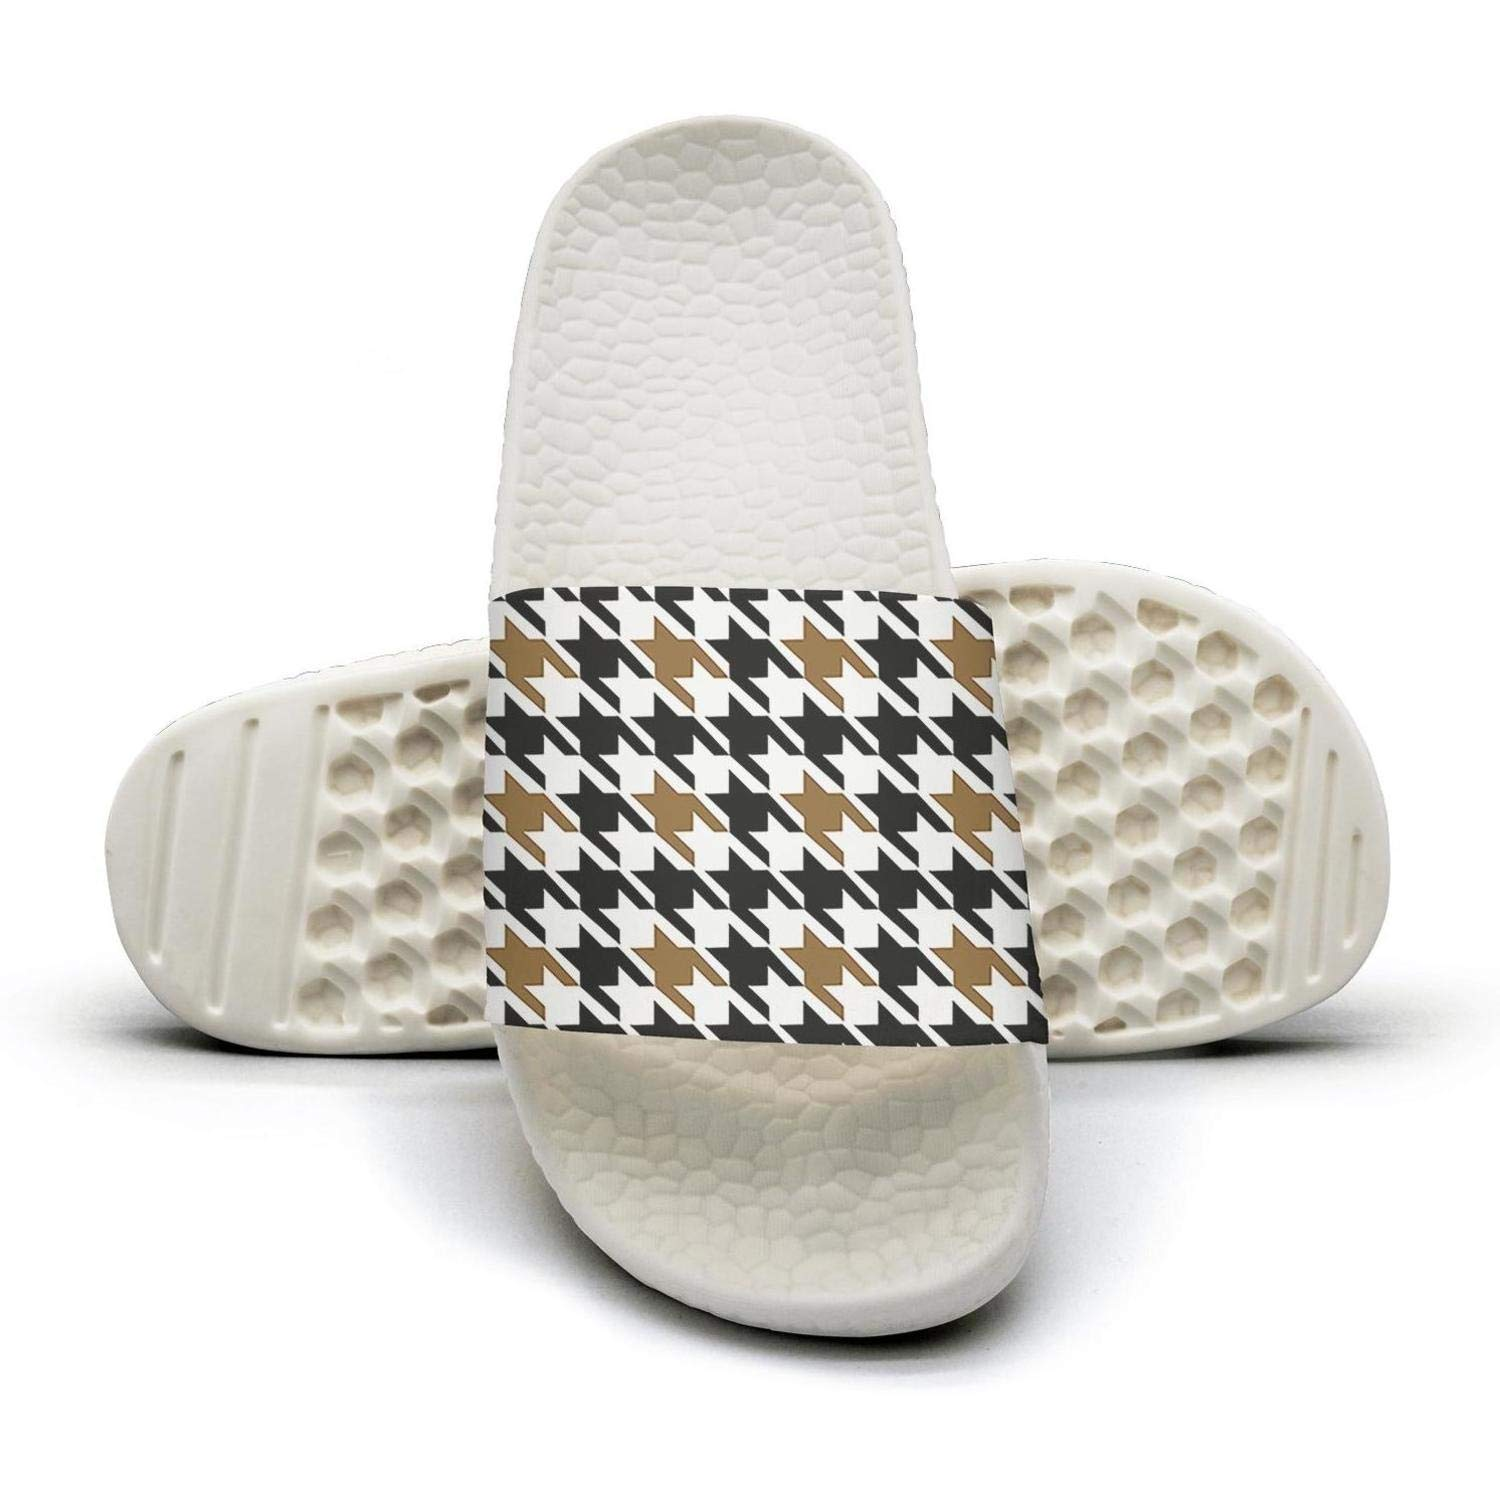 TAKLOOL Black and Beige Houndstooth Checkerboard Water Resistance Super Soft Womens Slides Sandals